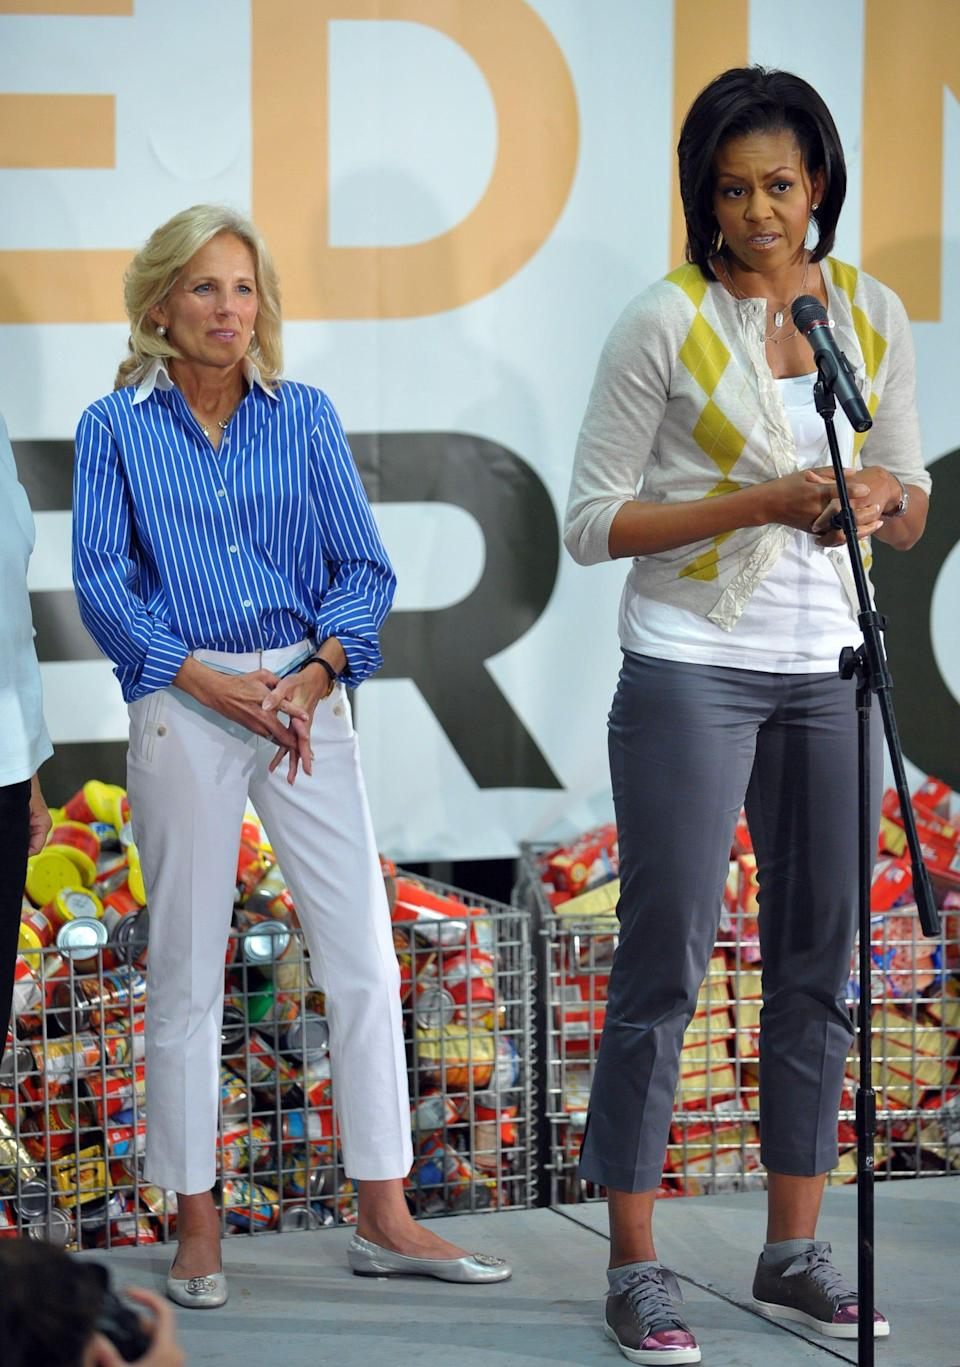 Both first lady Michelle Obama and second lady Jill Biden nail preppy chic in cropped pants during an event at the Capital Area Food Bank on April 29, 2009 in Washington.